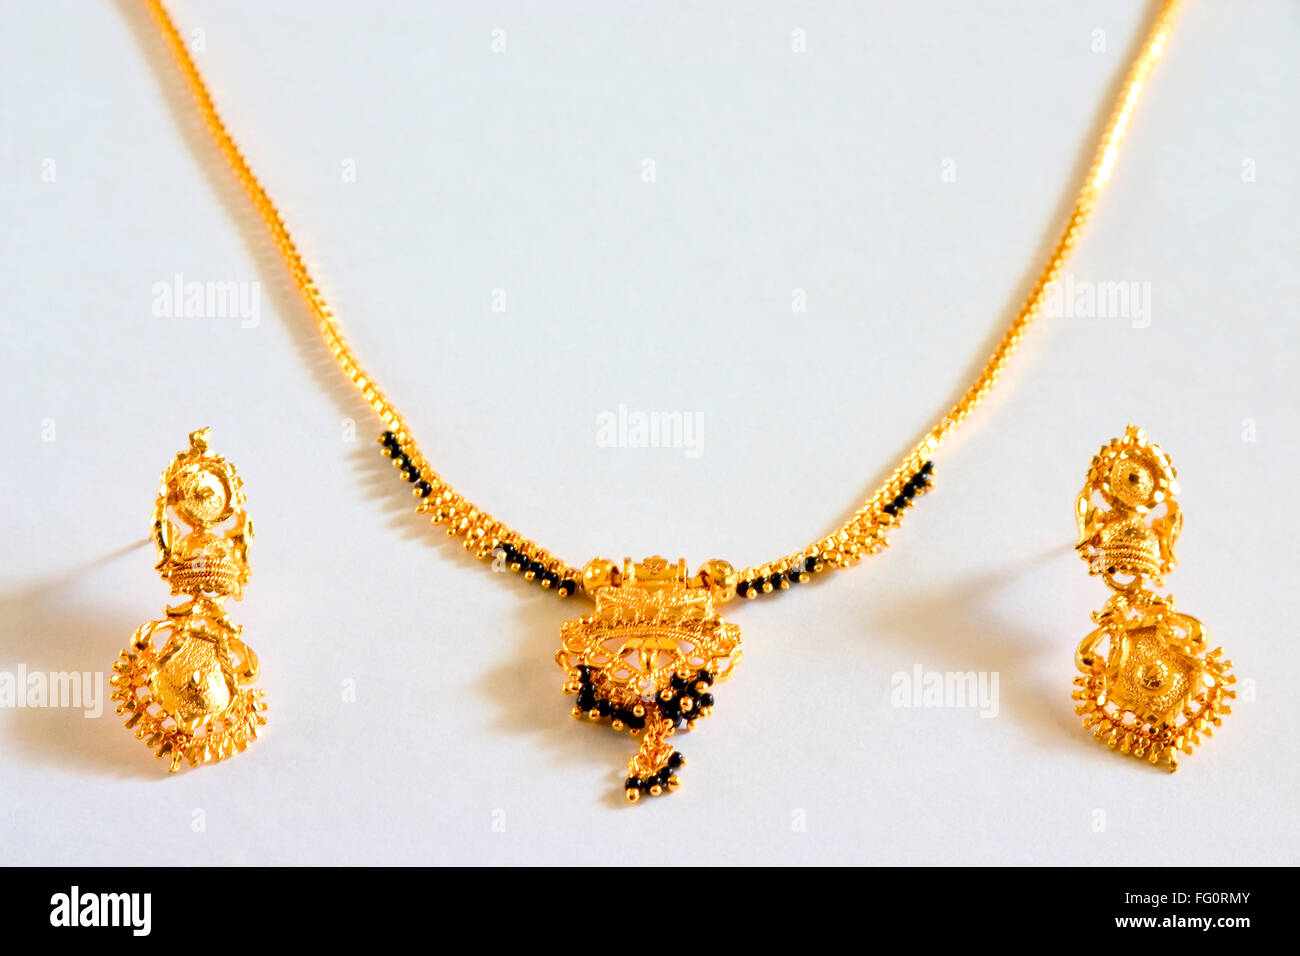 Concept gold black beads necklace mangalsutra hindu bride symbol concept gold black beads necklace mangalsutra hindu bride symbol marriage gold earrings imitation jewellery white background biocorpaavc